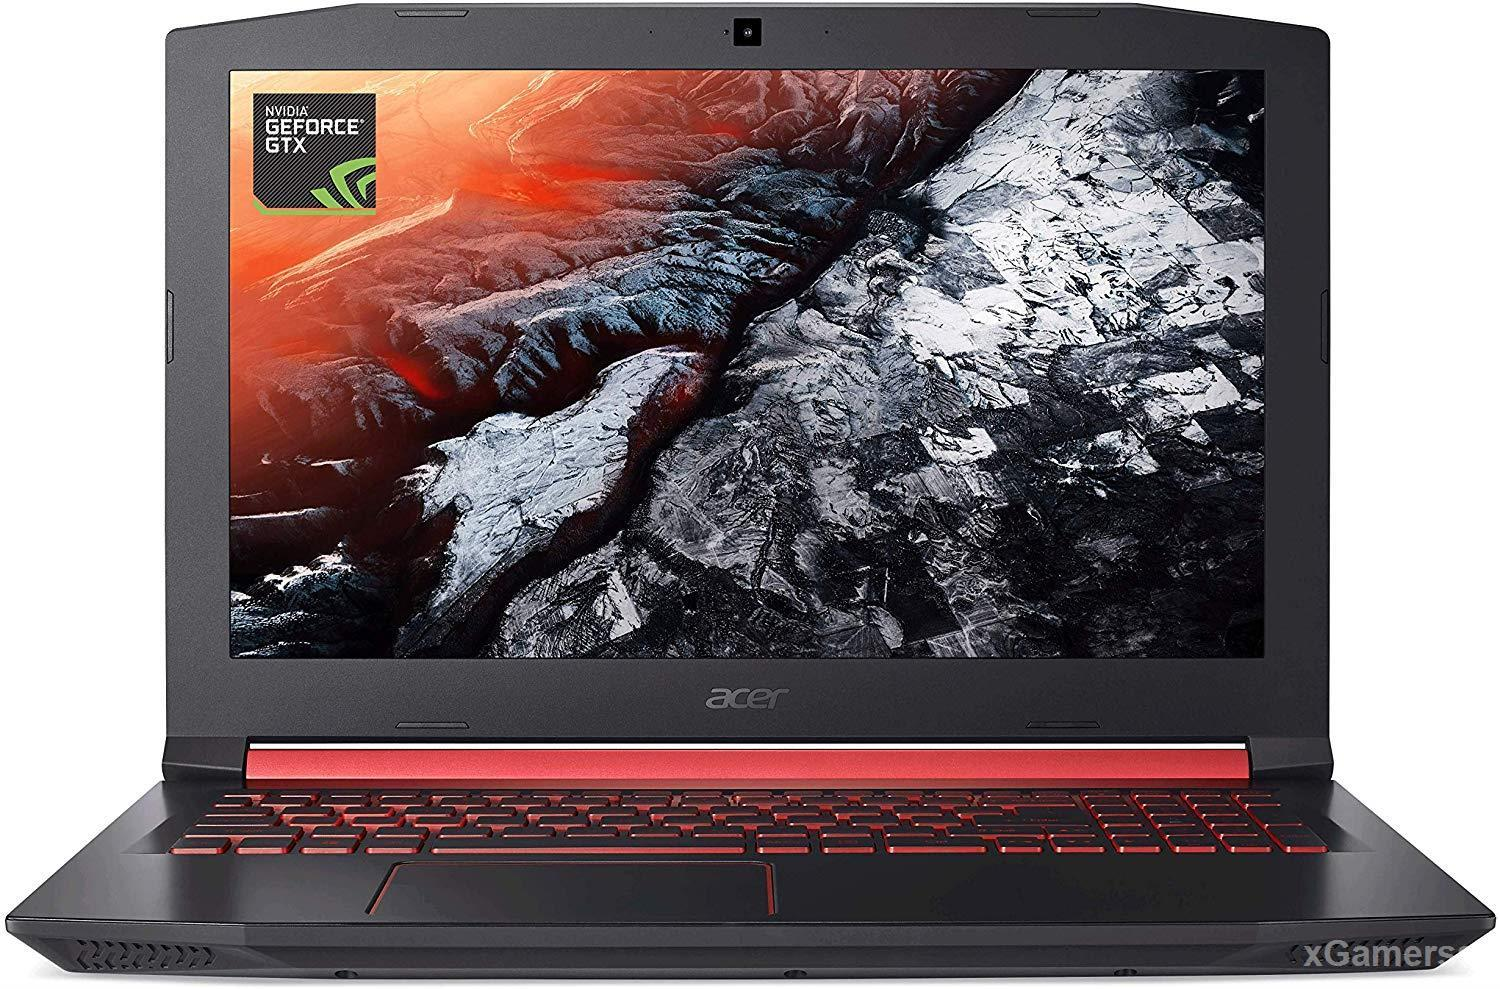 Acer Nitro 5 Gaming Laptop - best laptop for Witcher 3